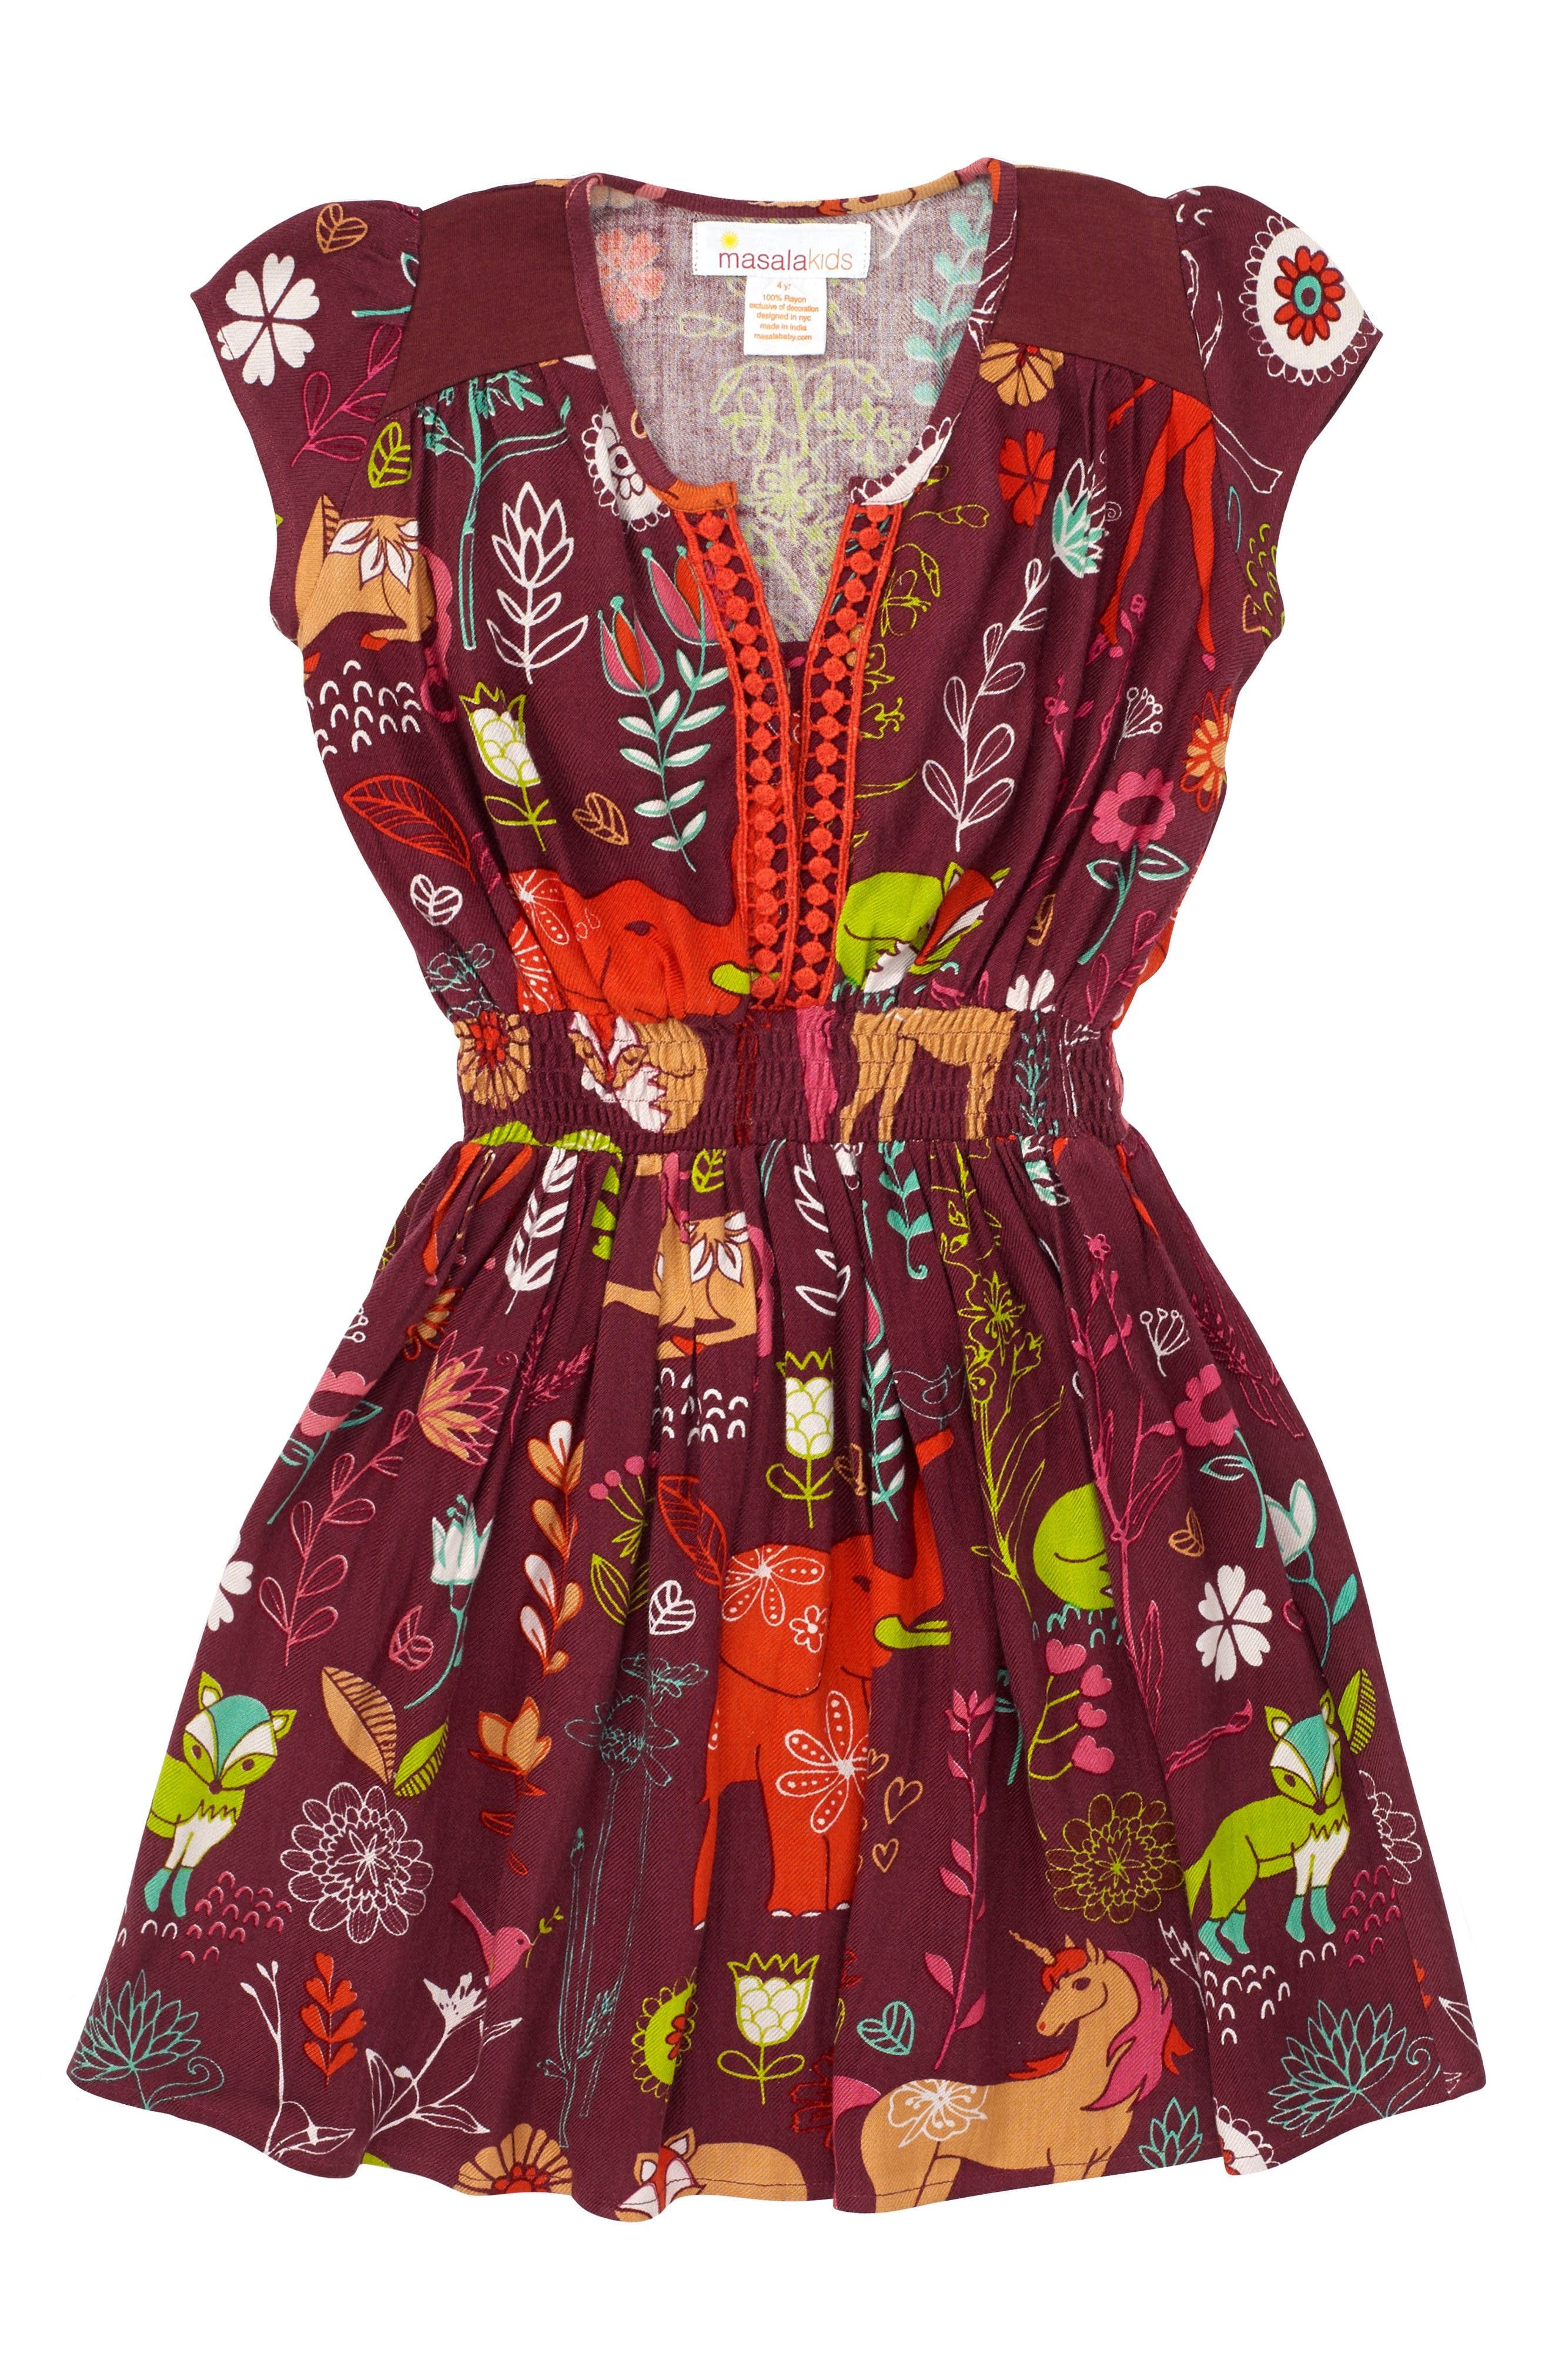 Magical Forest Dress,                         Main,                         color, Burgundy